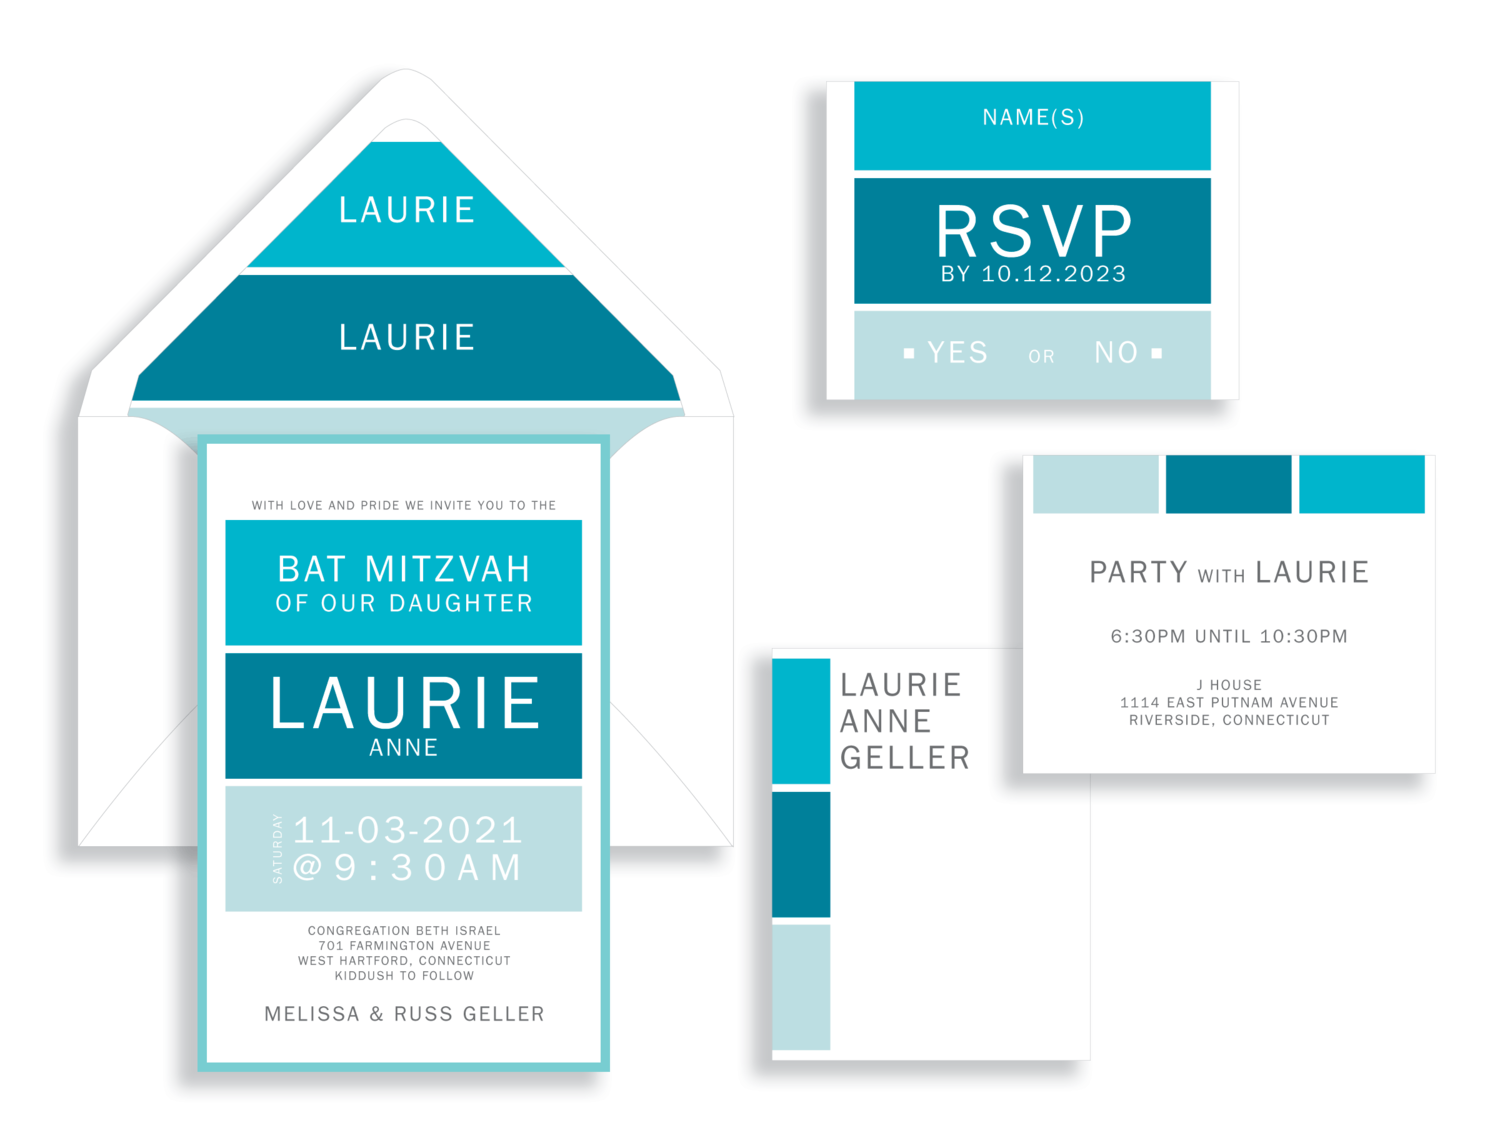 Laurie Anne Bat Mitzva Invitation in Turquoise blocks.  Personalized envelope liner.  Bat Mitzvah invitations Northern Virginia Fairfax.